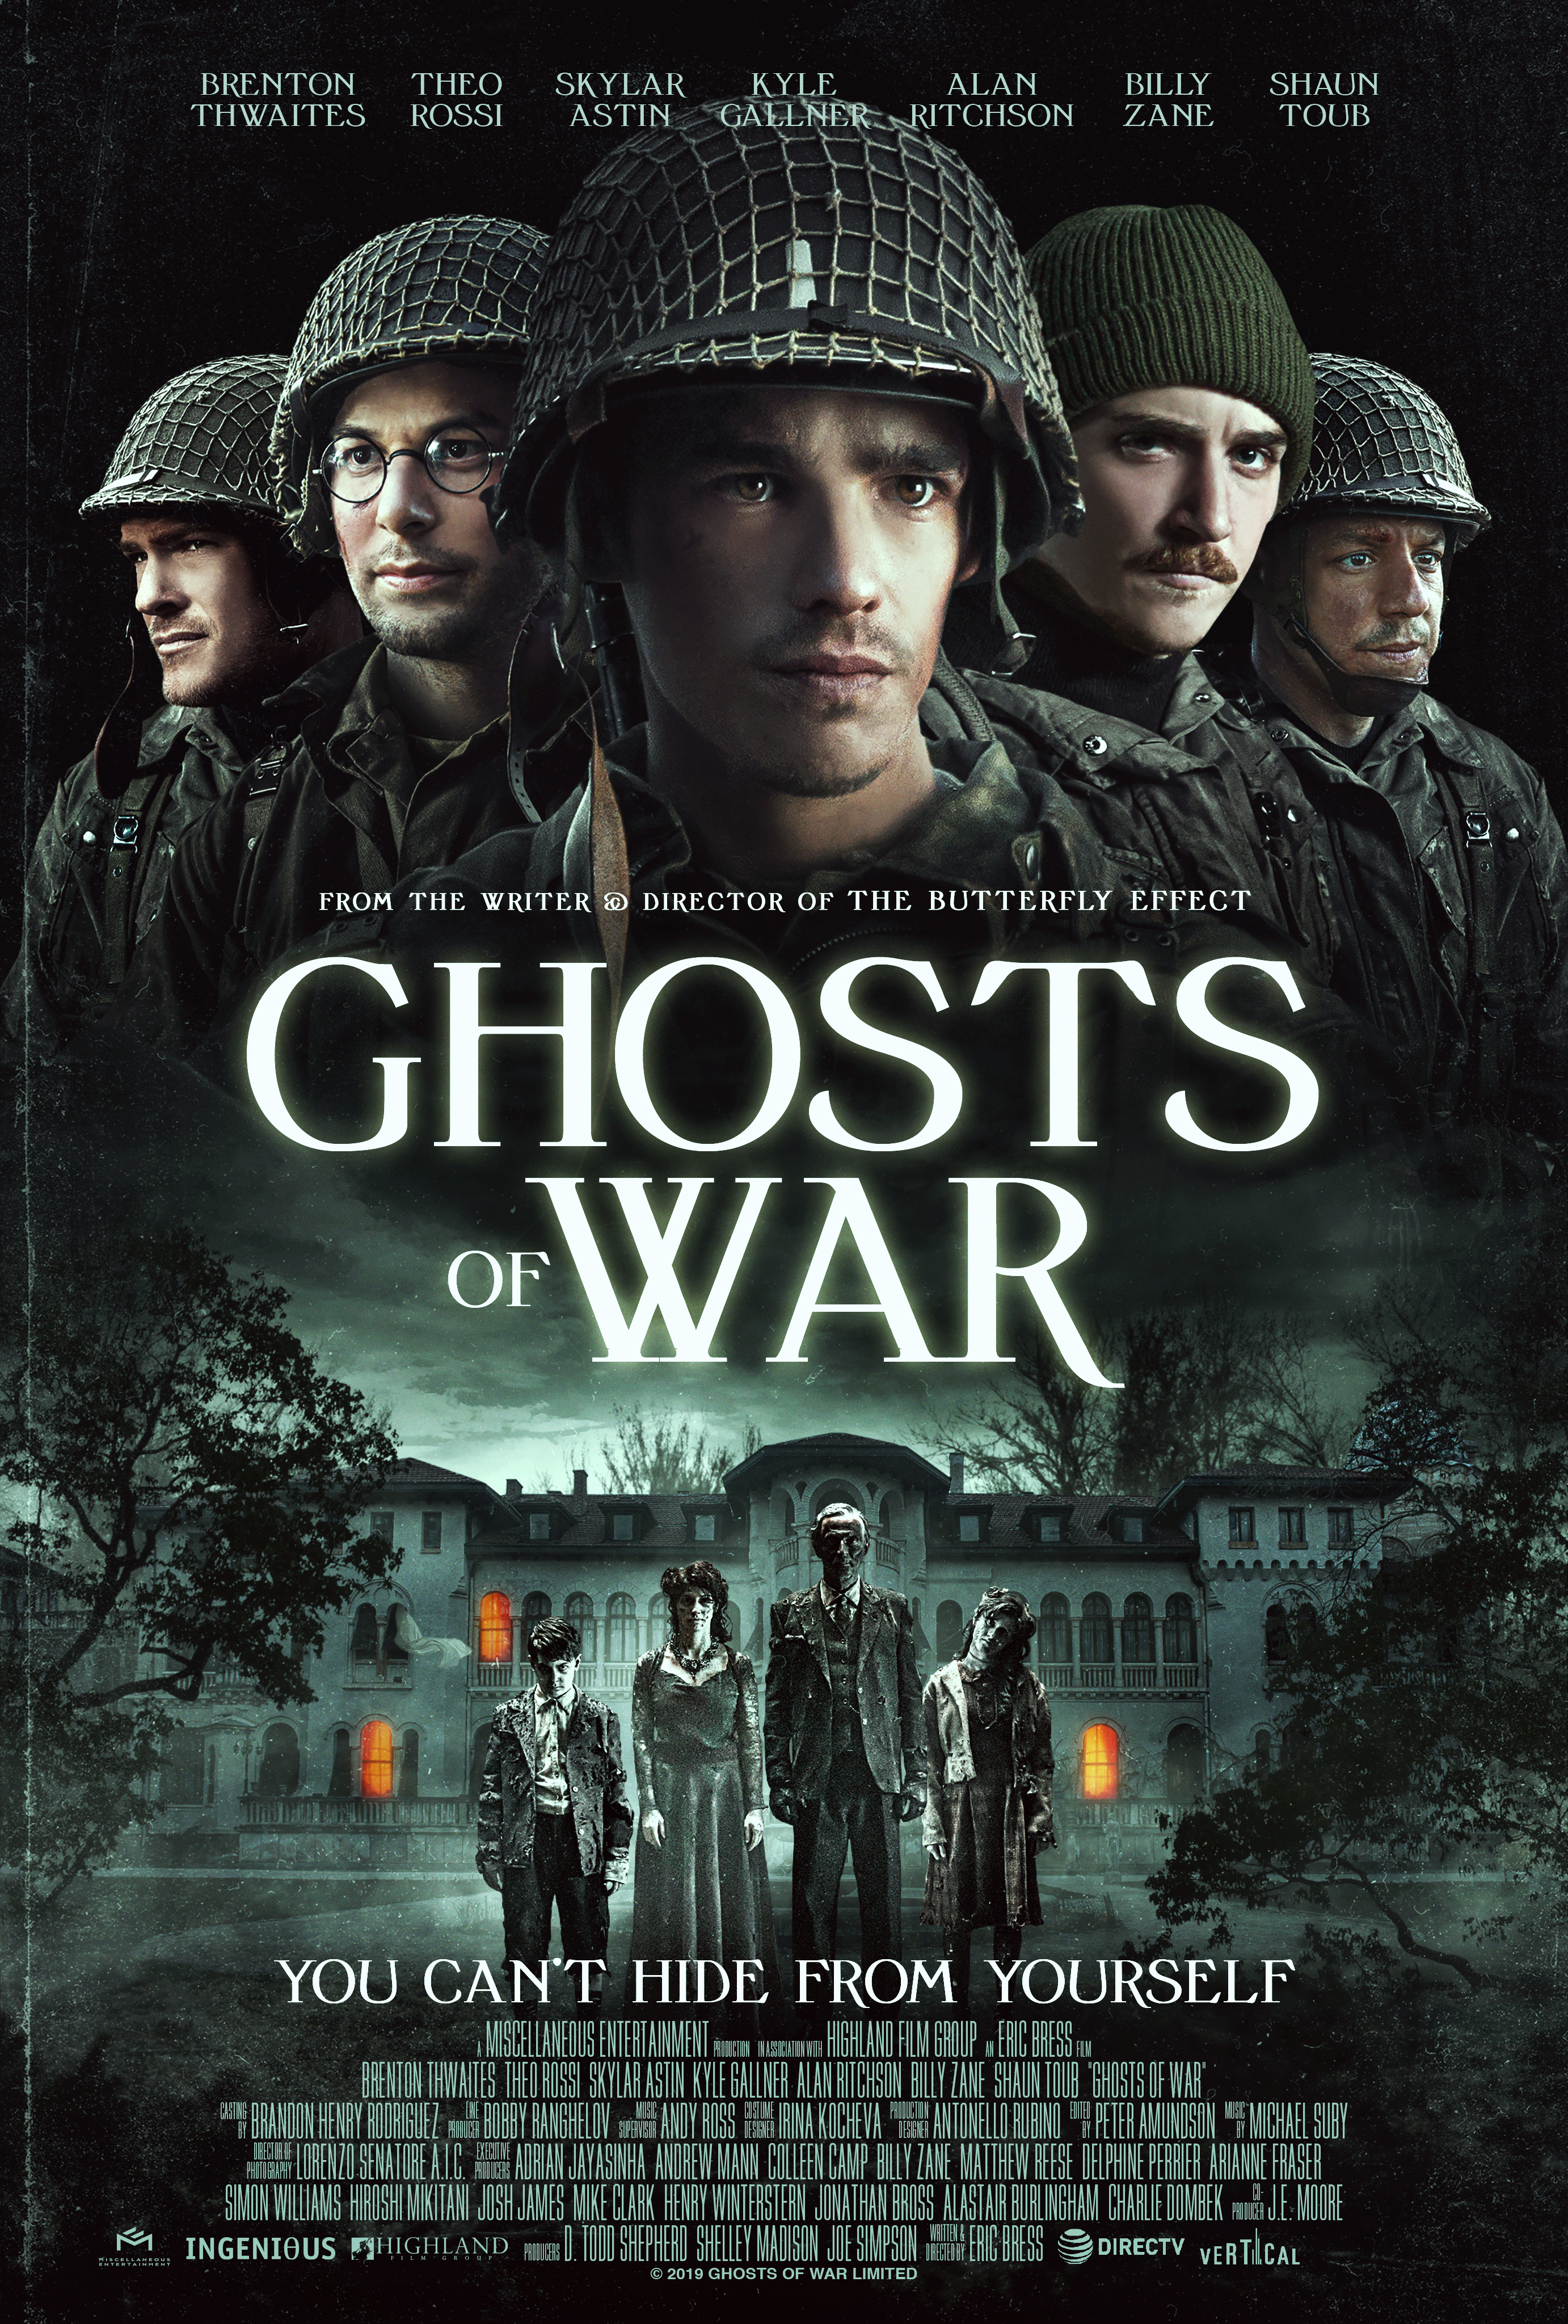 Ghosts Of War 2020 Imdb War photography involves photographing armed conflict and its effects on people and places. ghosts of war 2020 imdb